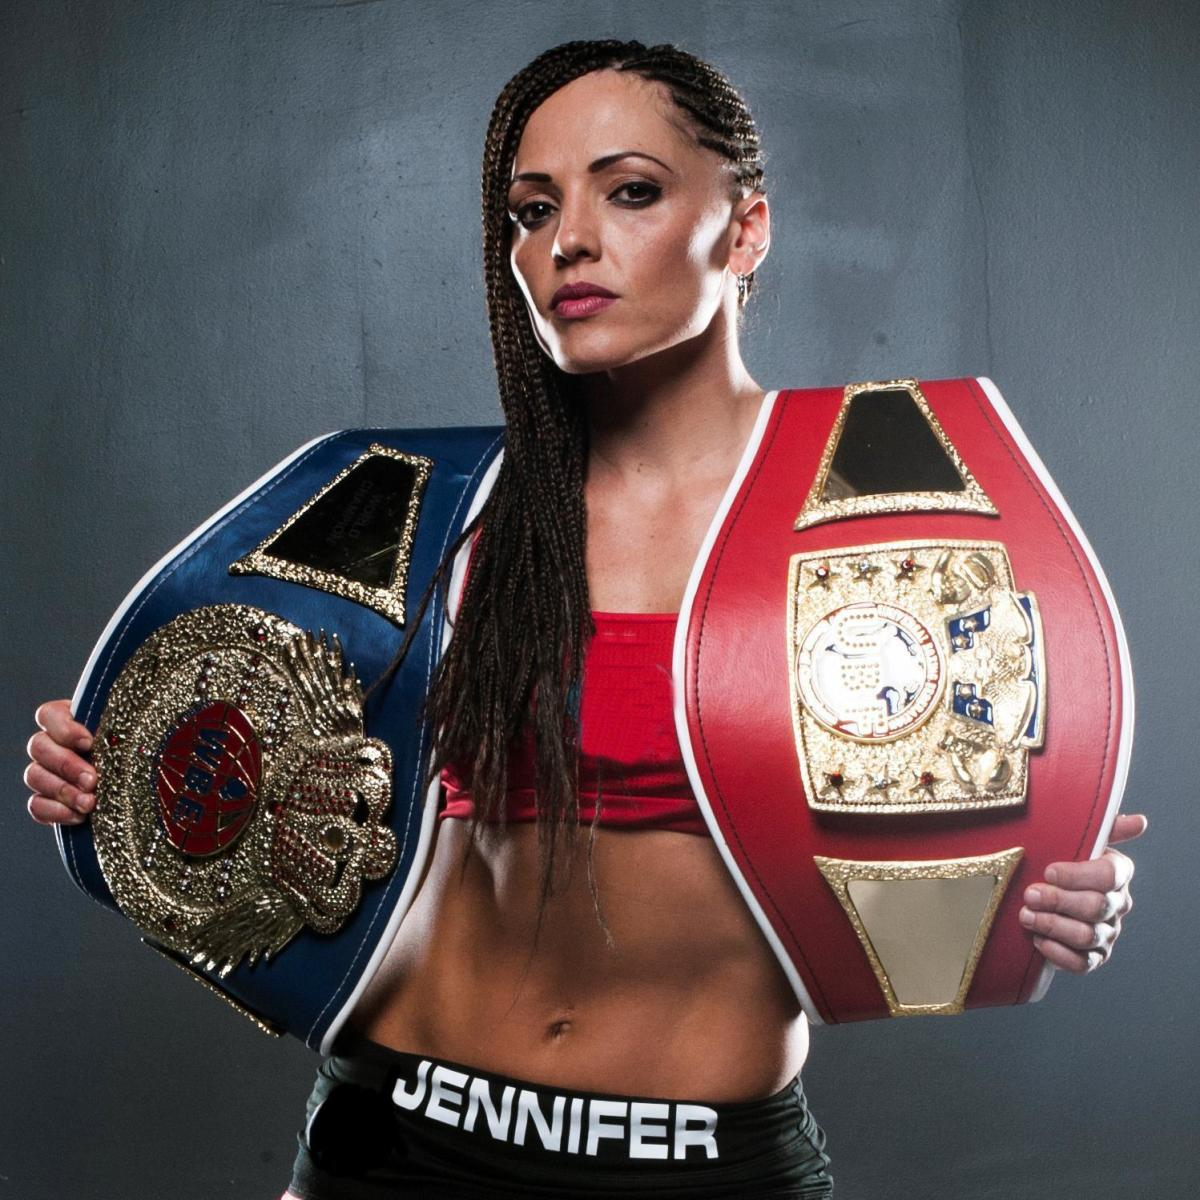 Female boxer Jennifer Salinas